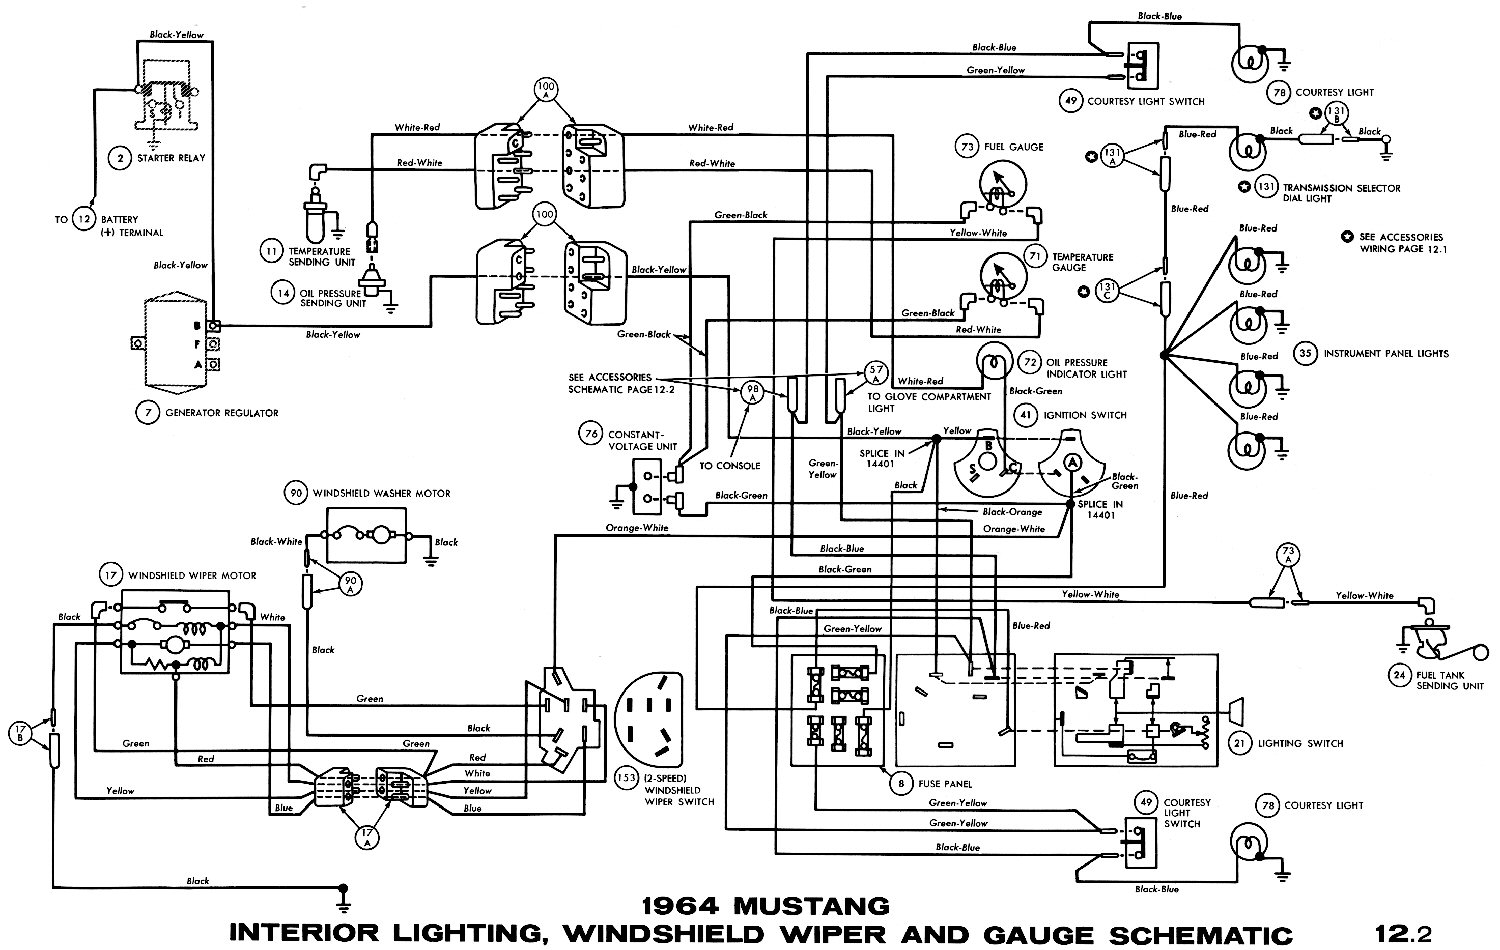 1964 Mustang Wiring Diagrams Average Joe Restoration Chevy Oil Sending Unit Diagram Pressure